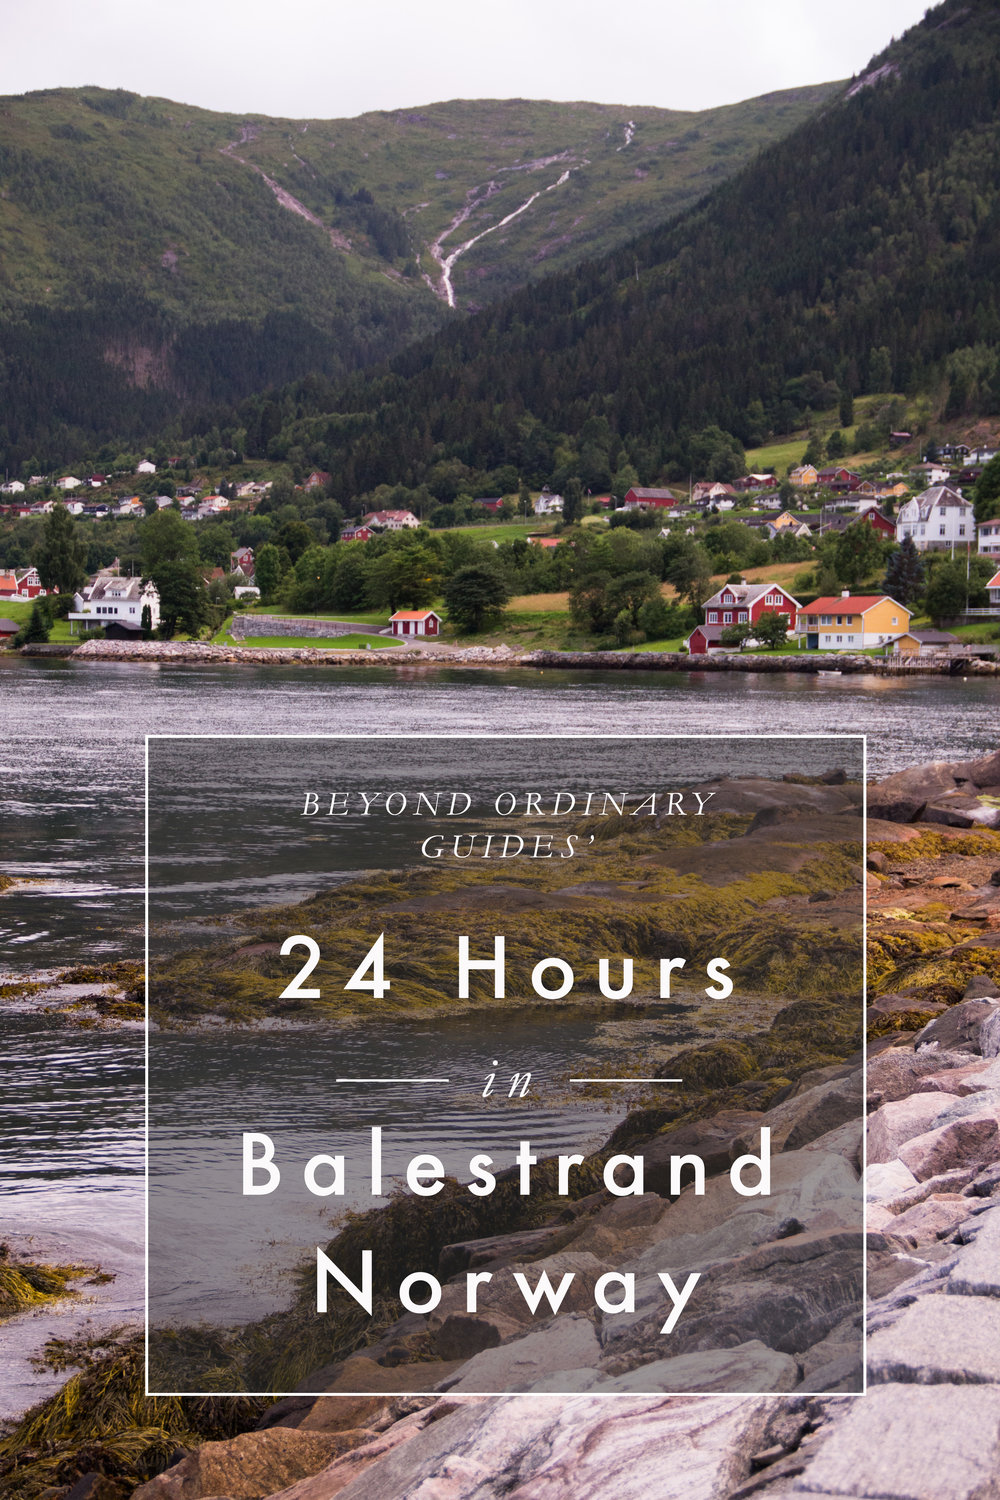 Beyond Ordinary Guides' 24 Hours in Balestrand Norway